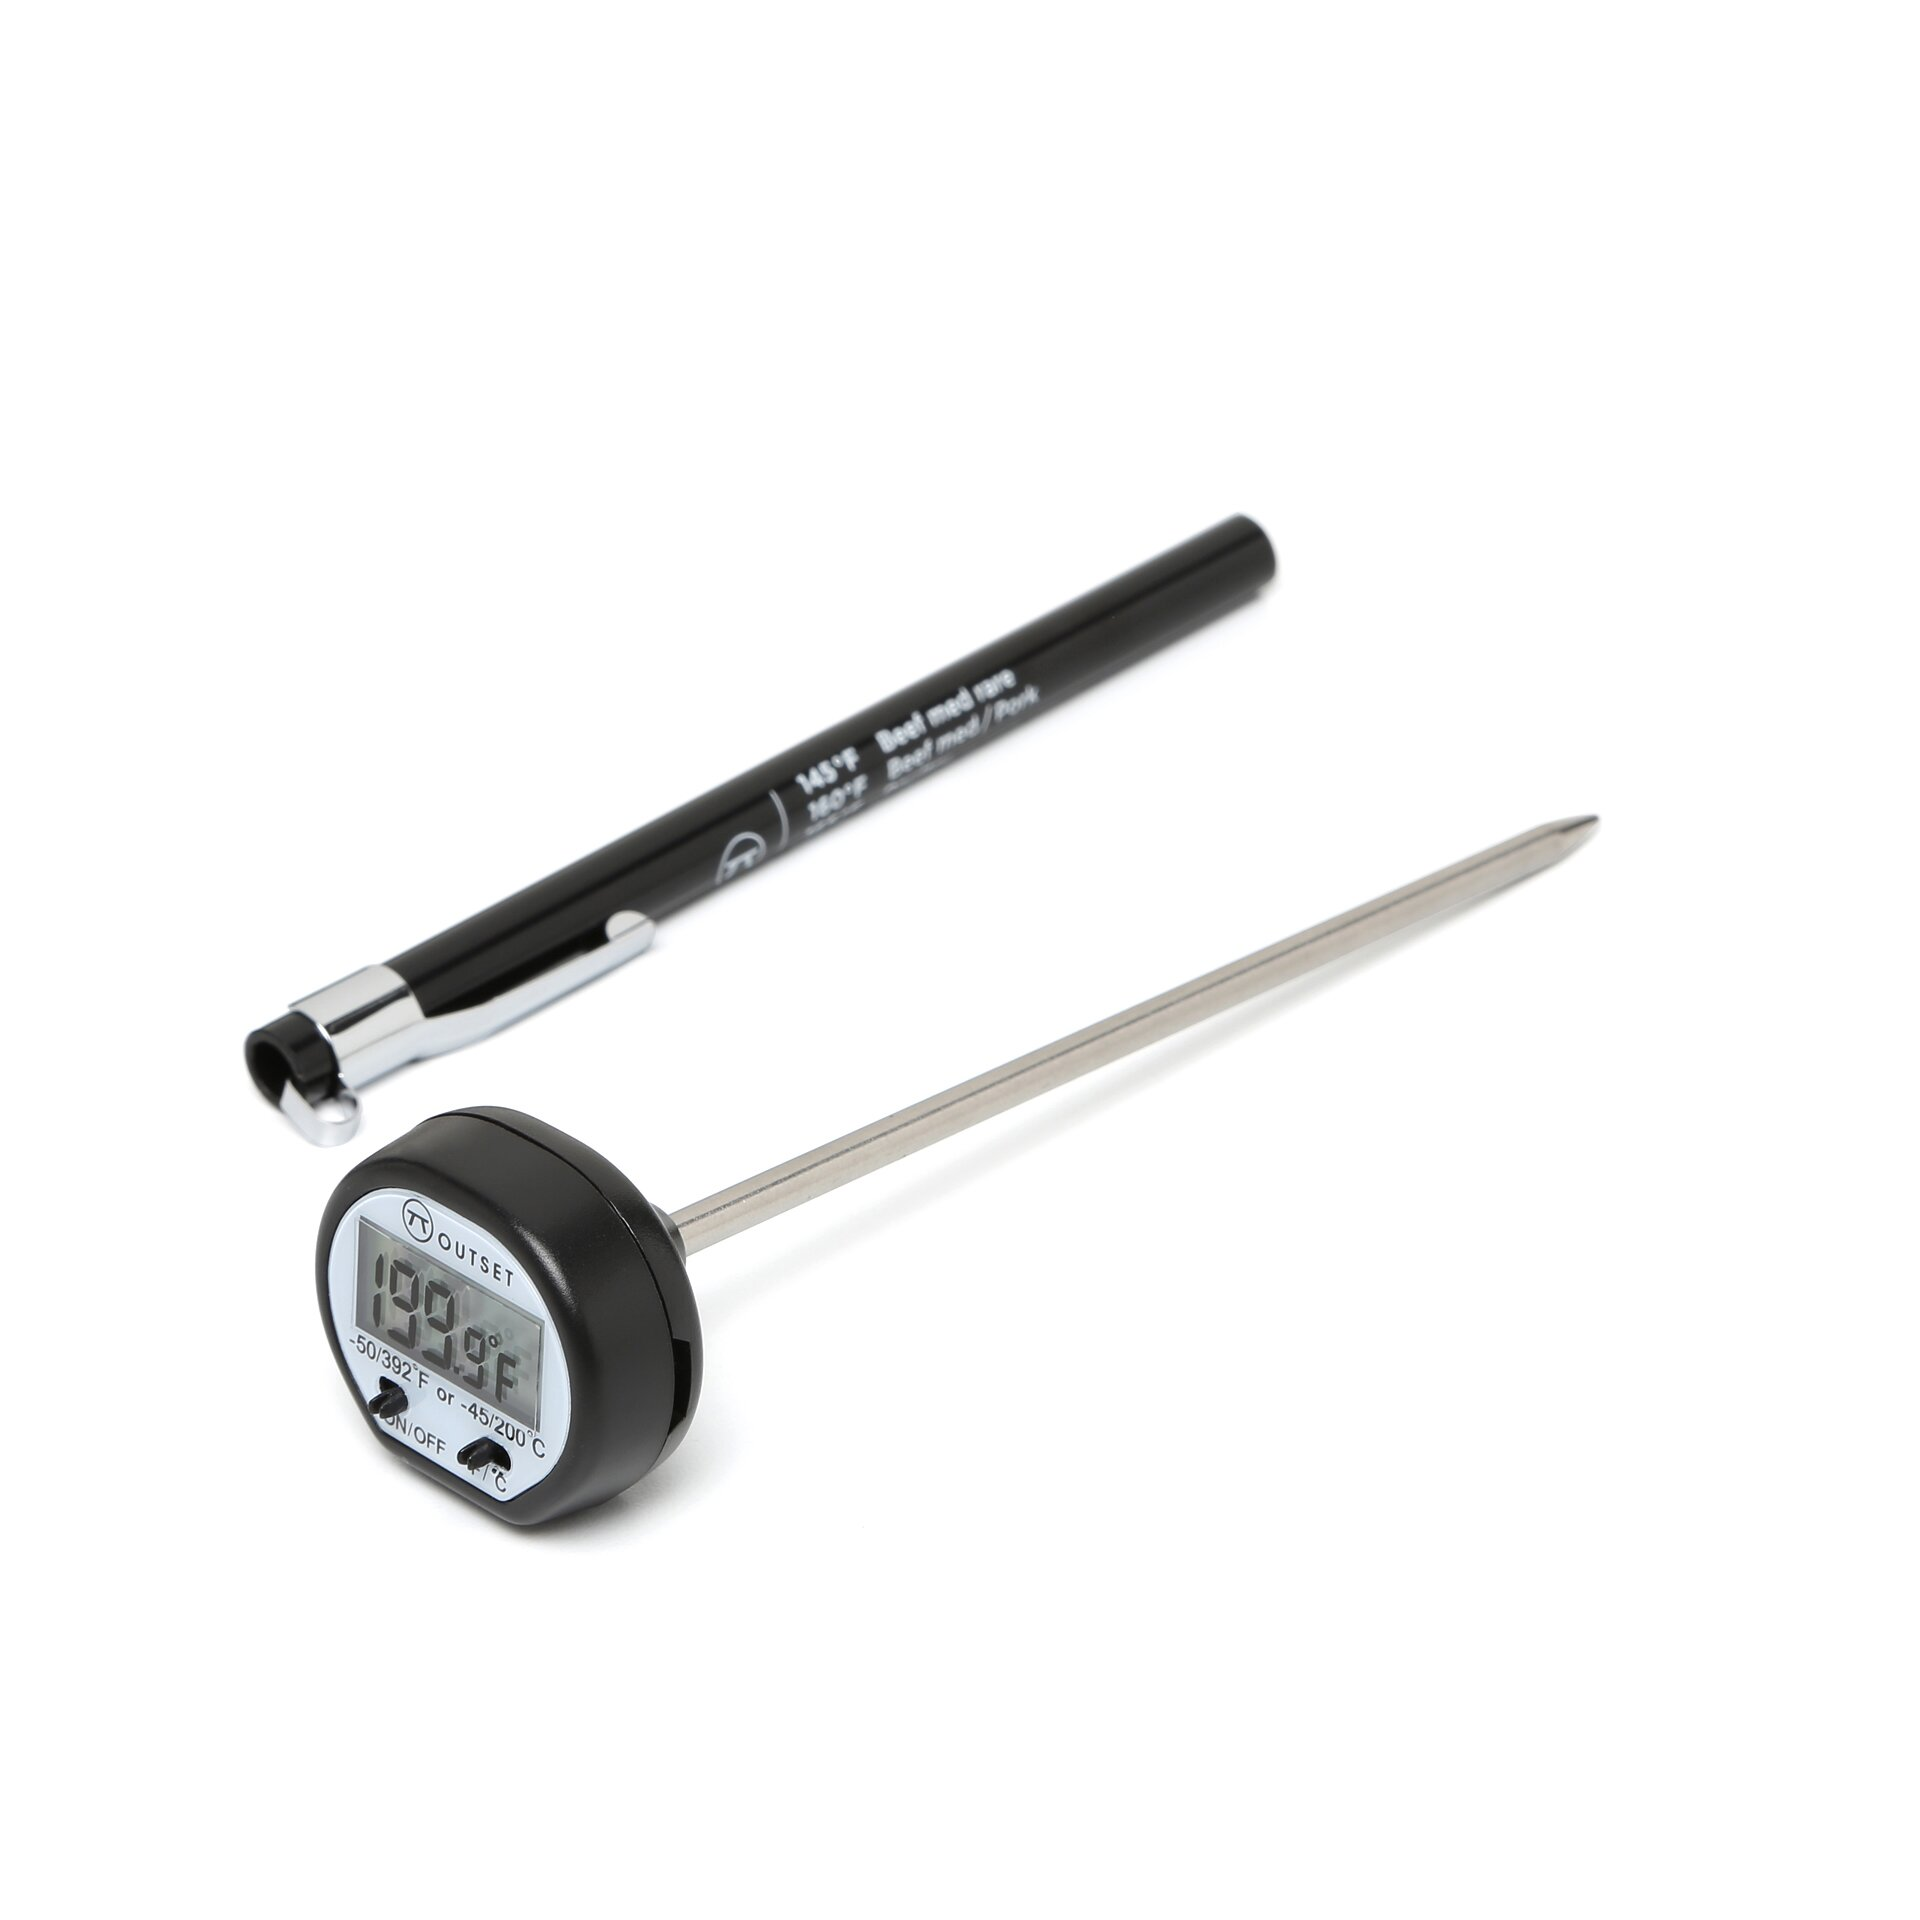 All clad instant read thermometer - Outset Instant Read Digital Thermometer